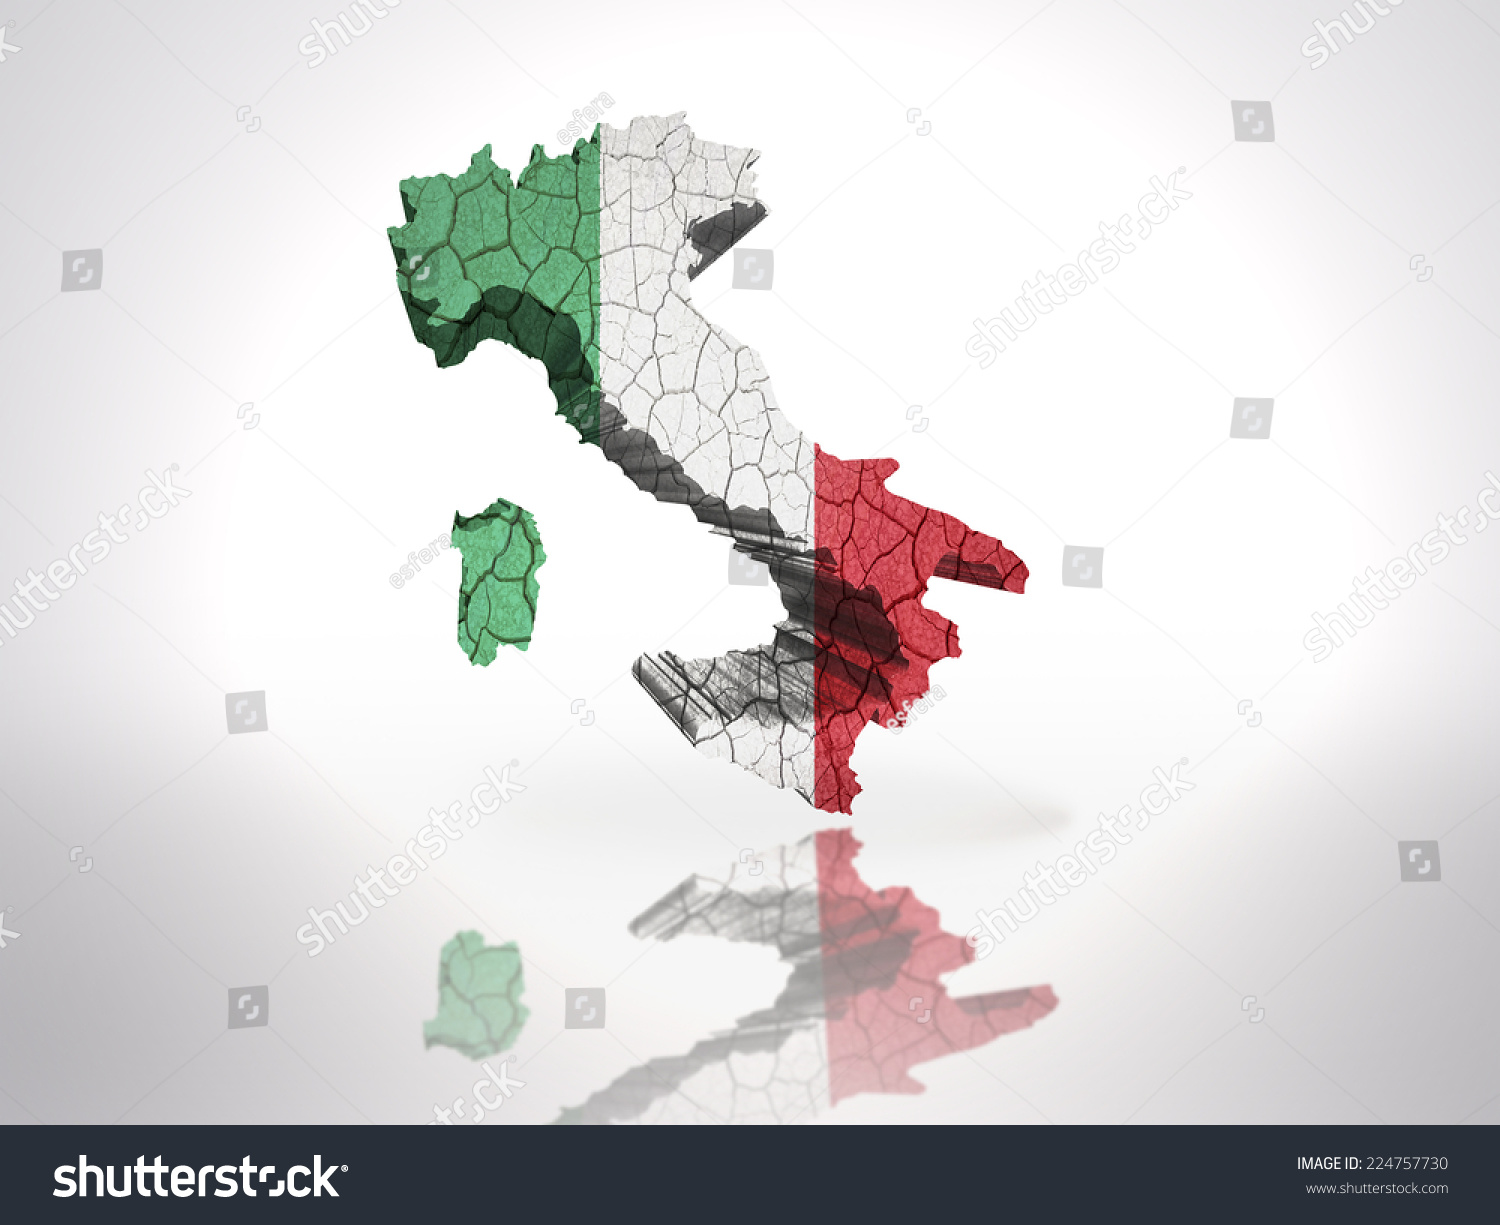 Map Of Italy In Italian.Map Italy Italian Flag On White Stock Illustration 224757730